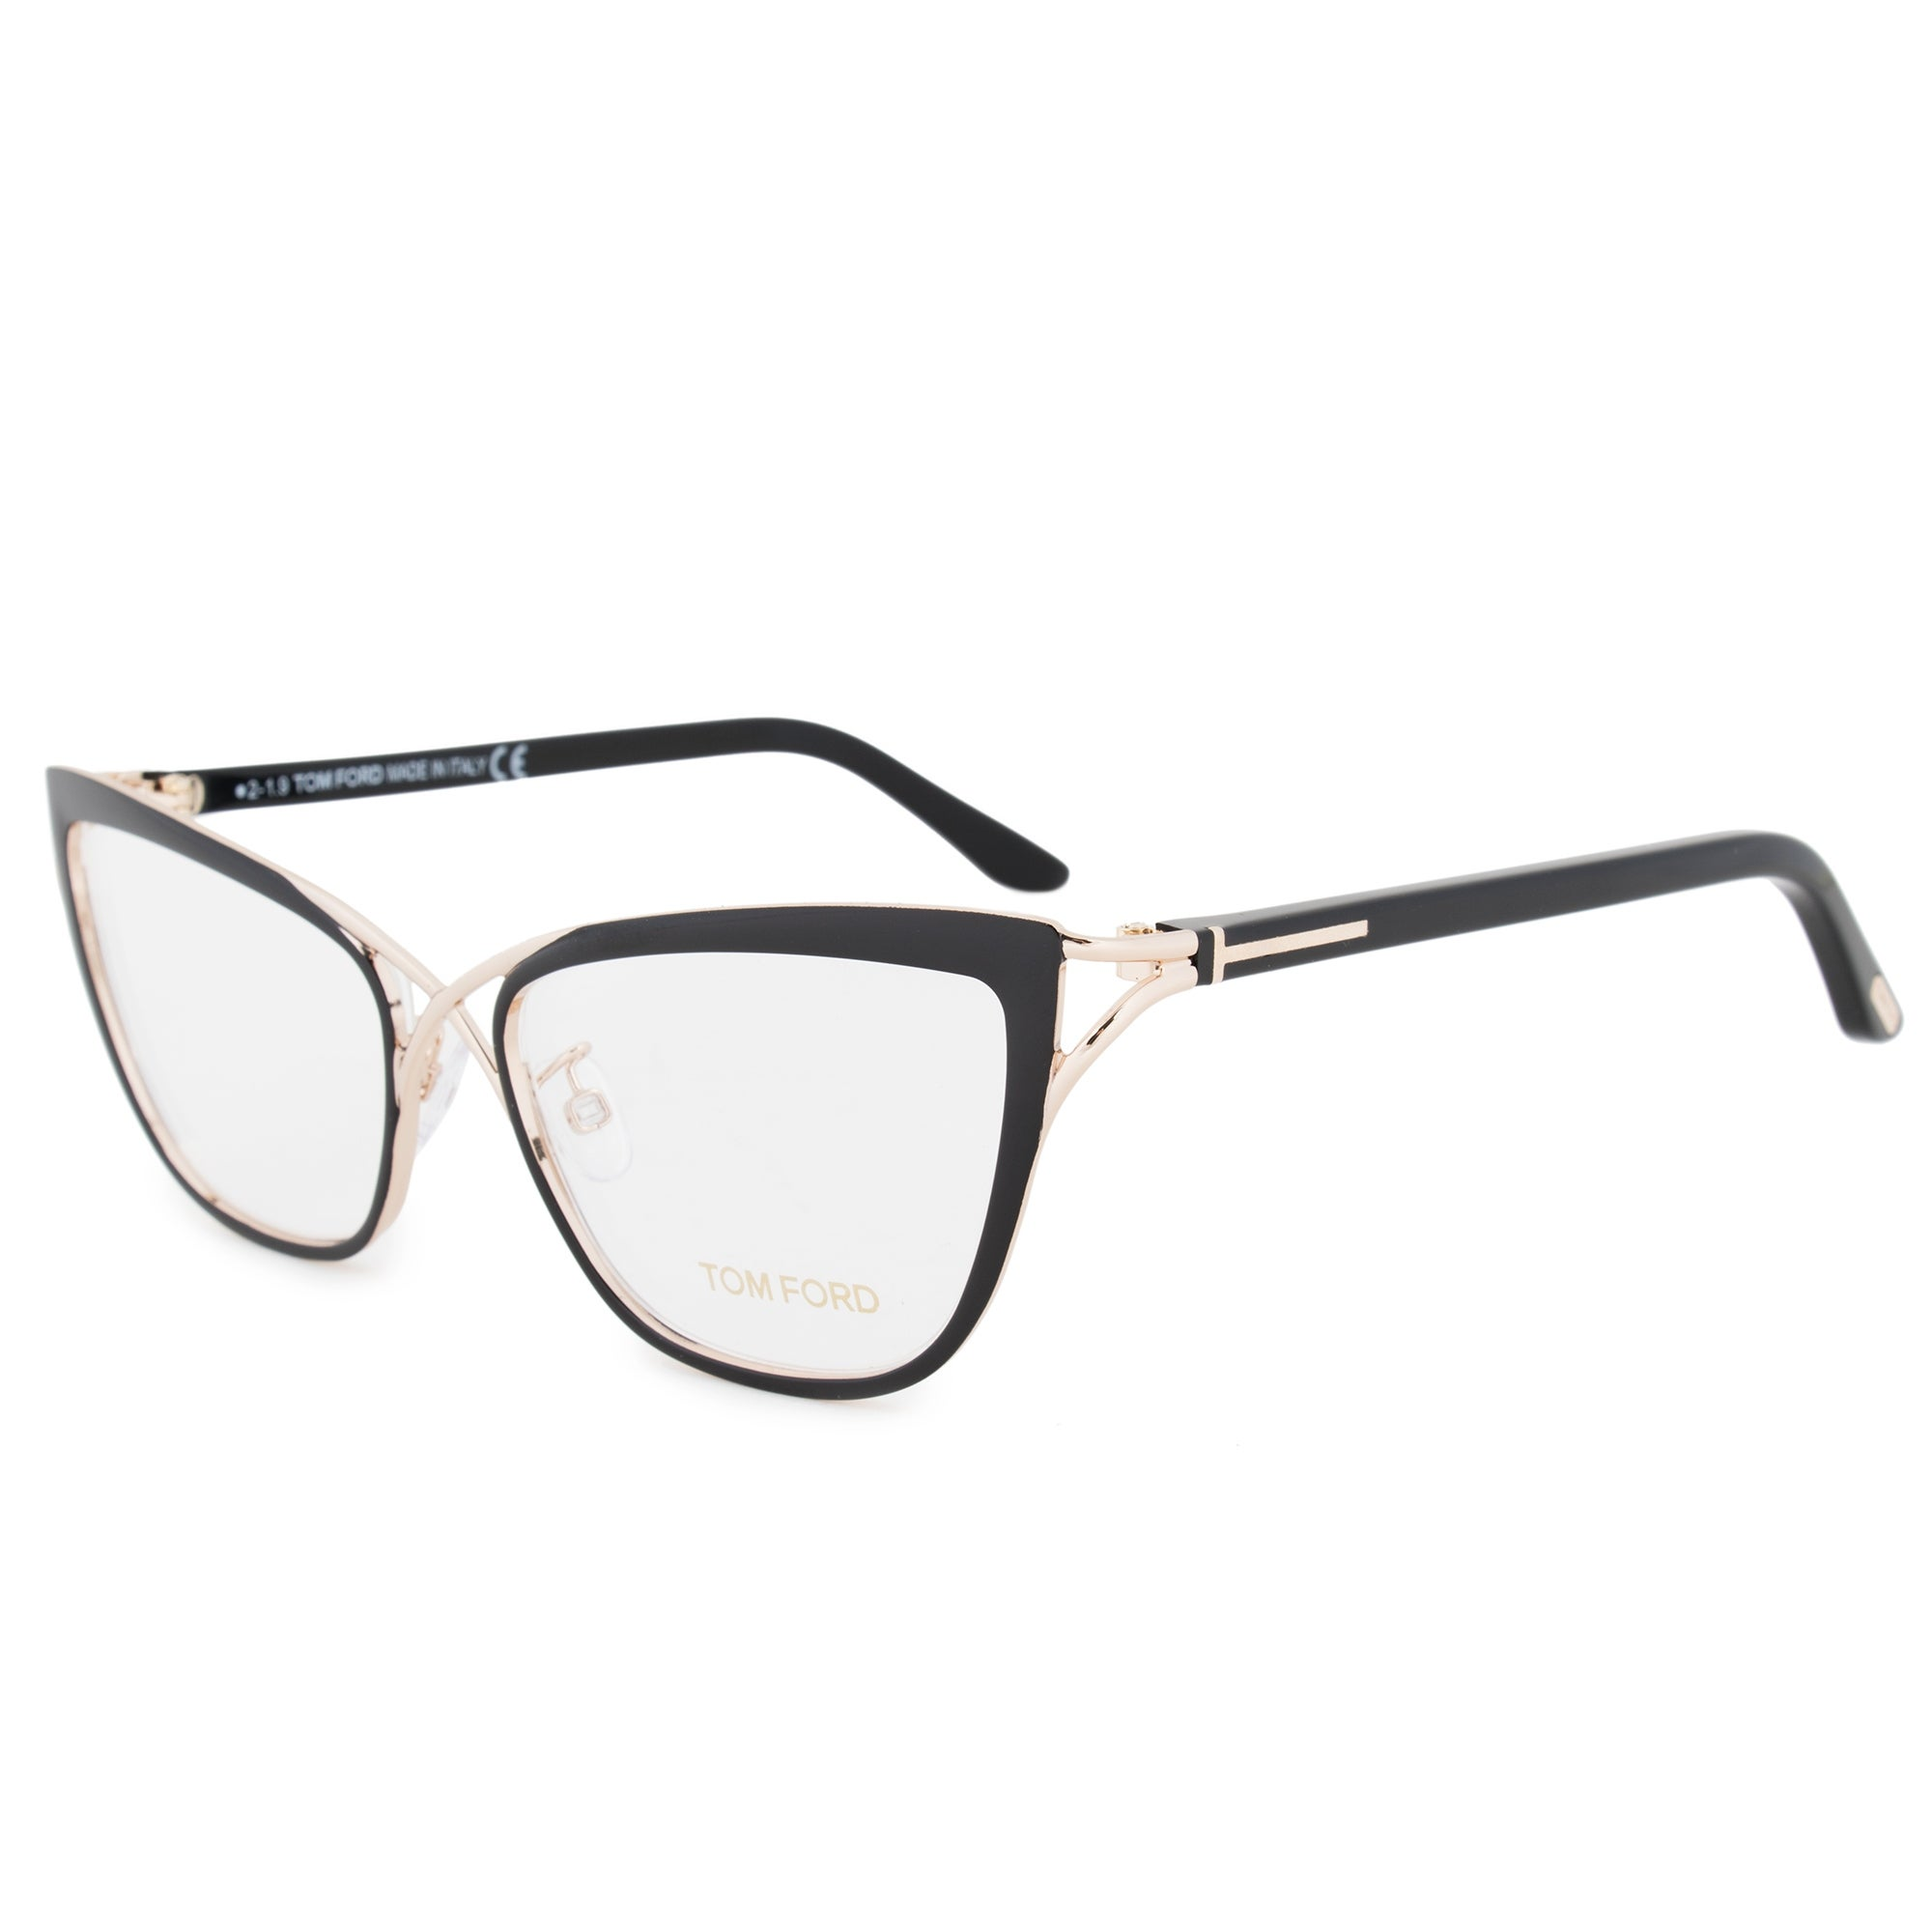 a953e2df9a9e Shop Tom Ford FT5272 005 Cateye Eyeglasses Frame - Free Shipping Today -  Overstock - 27877560